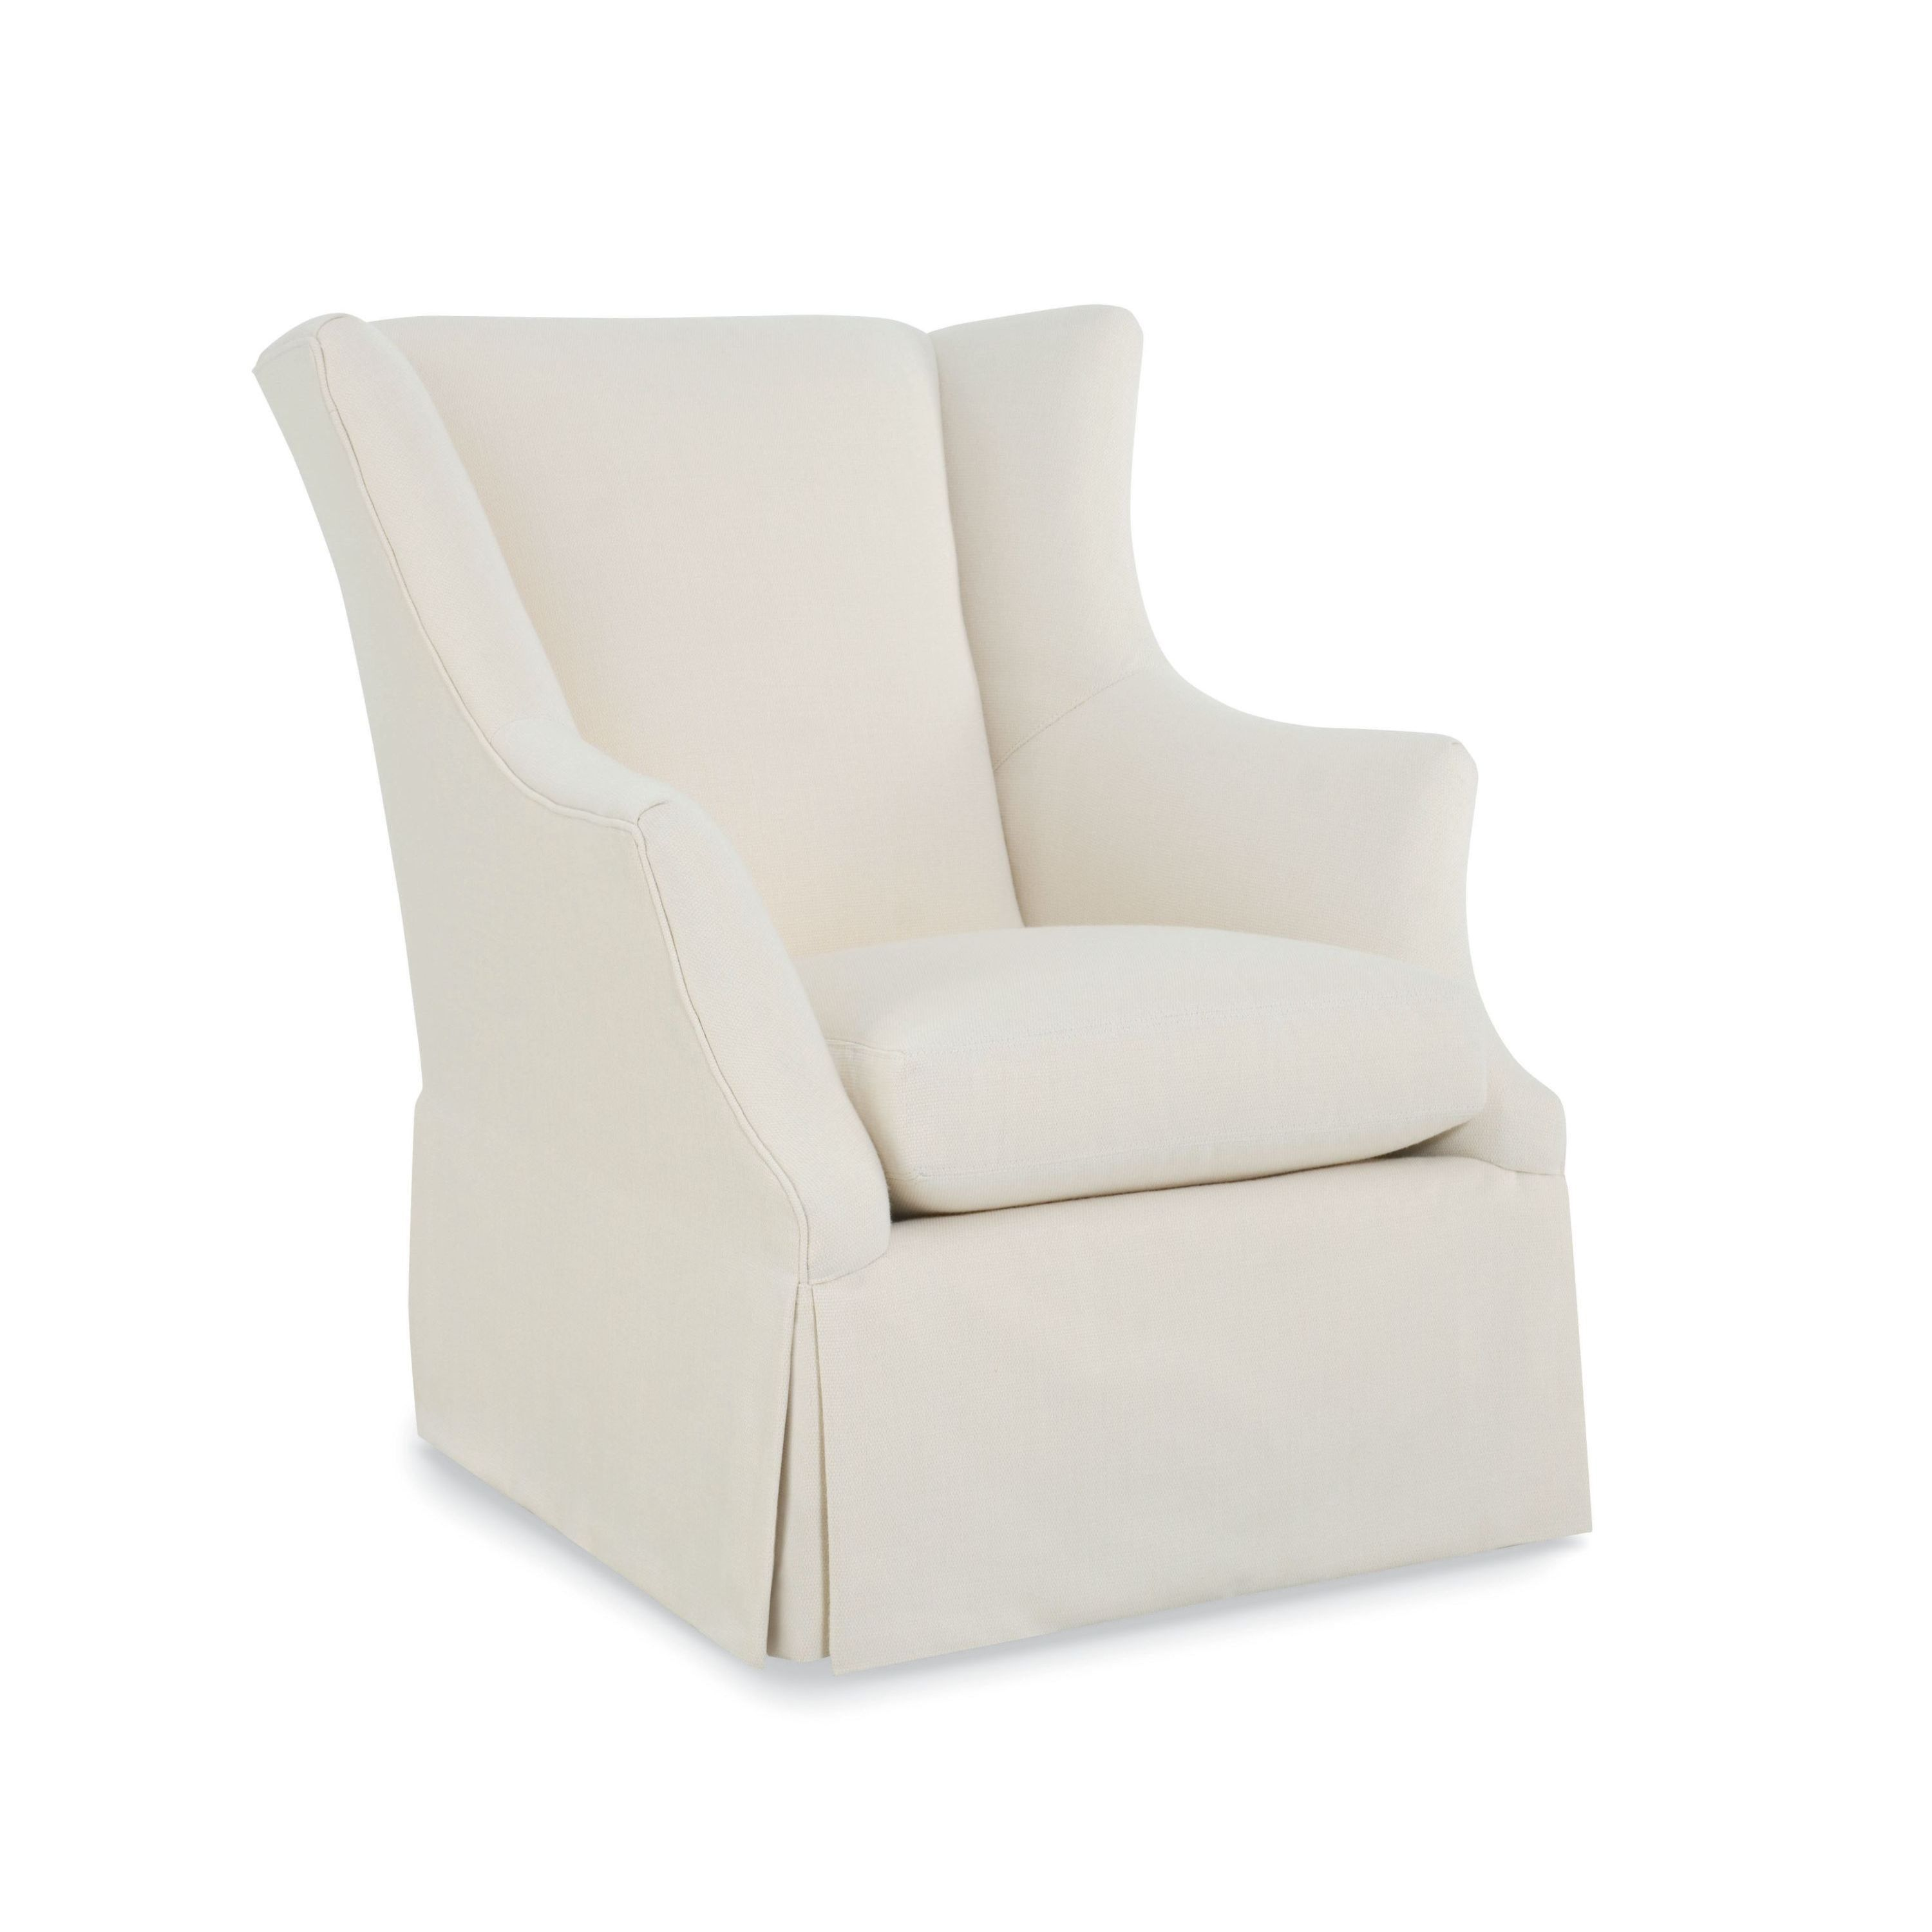 Pin by Plum Goose on Top Sellers Swivel glider chair